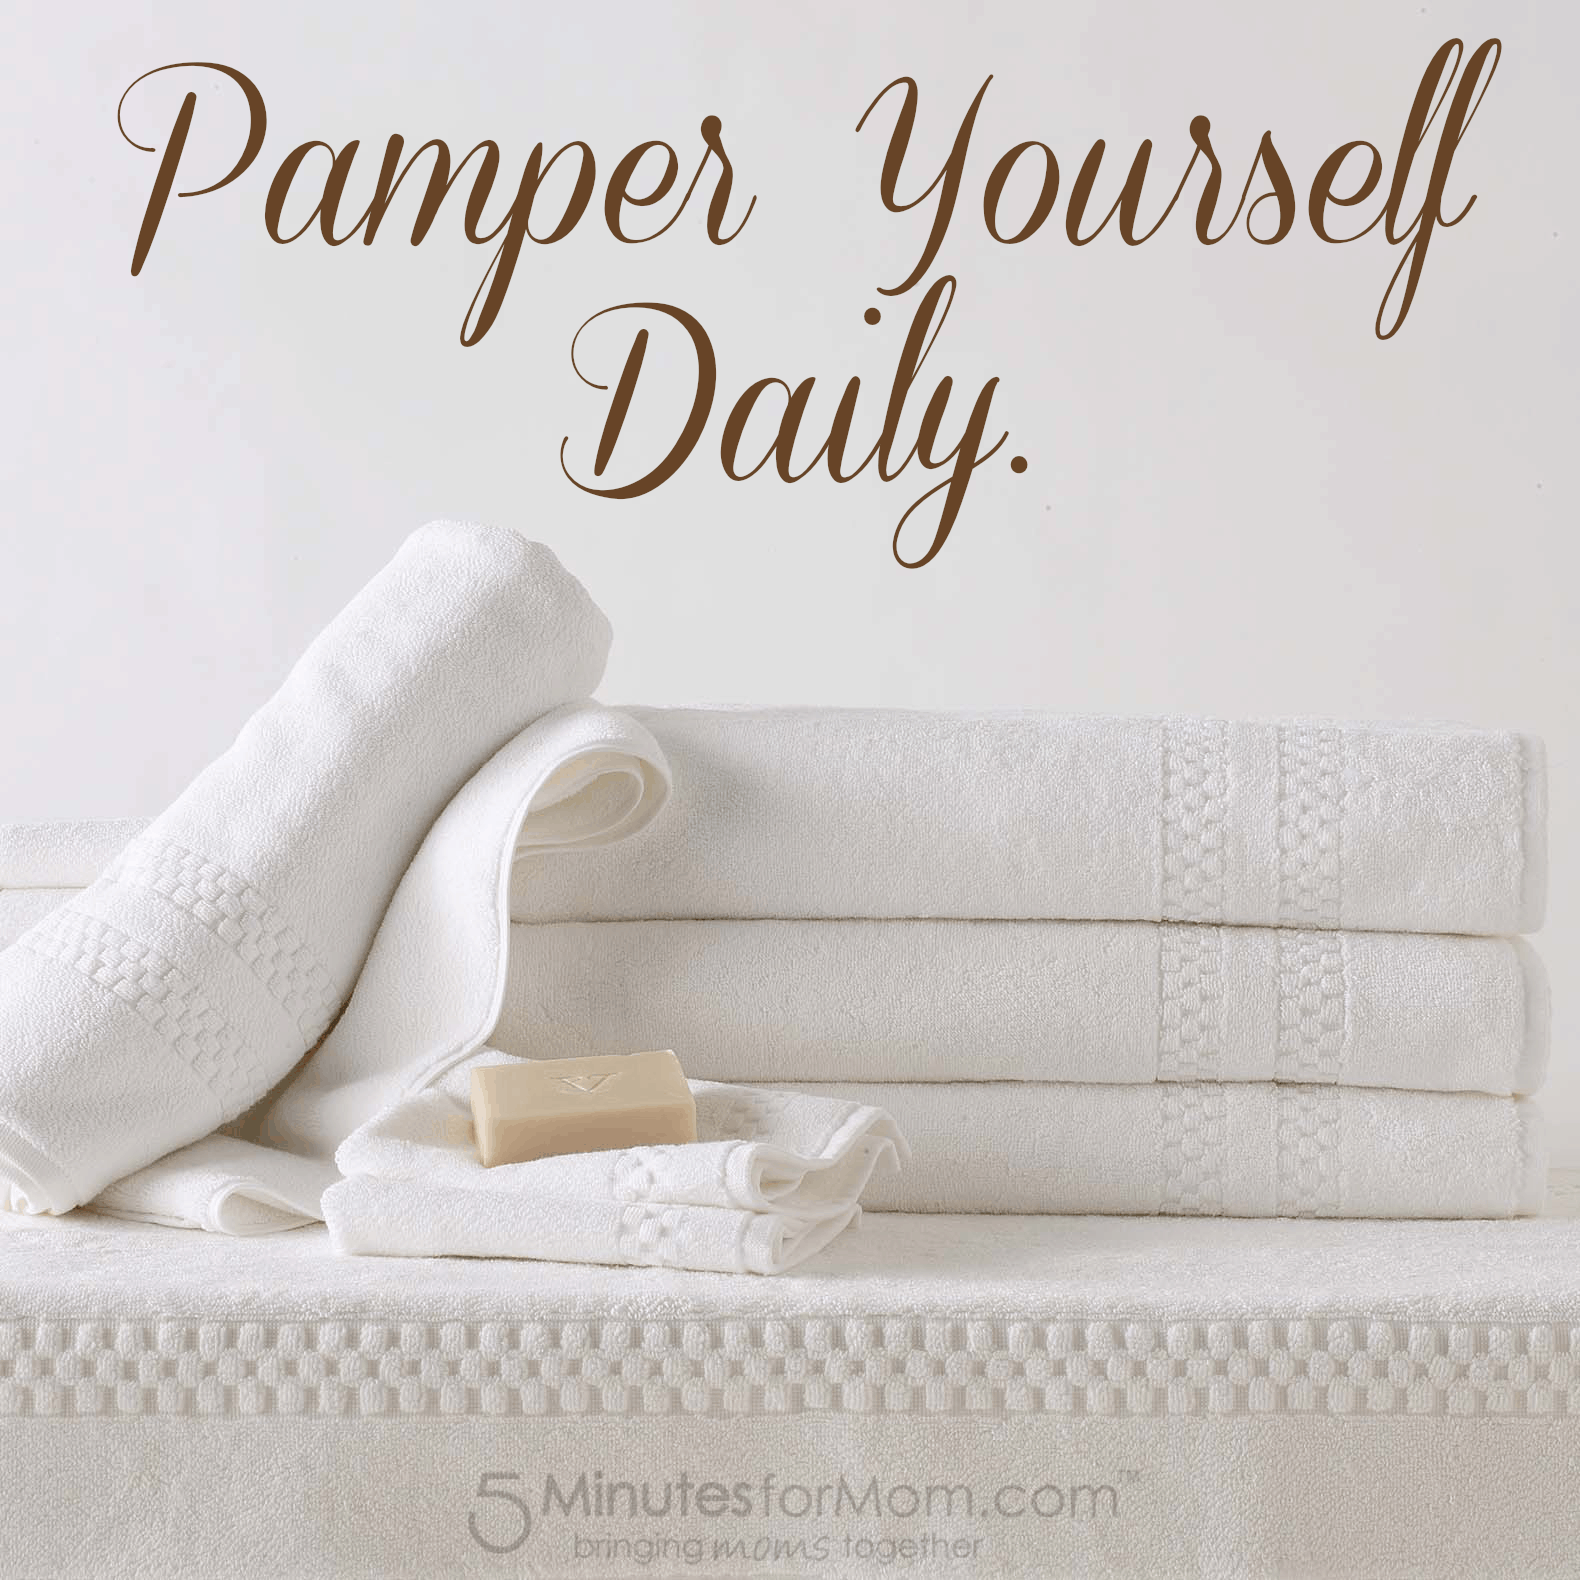 Pamper Yourself Daily